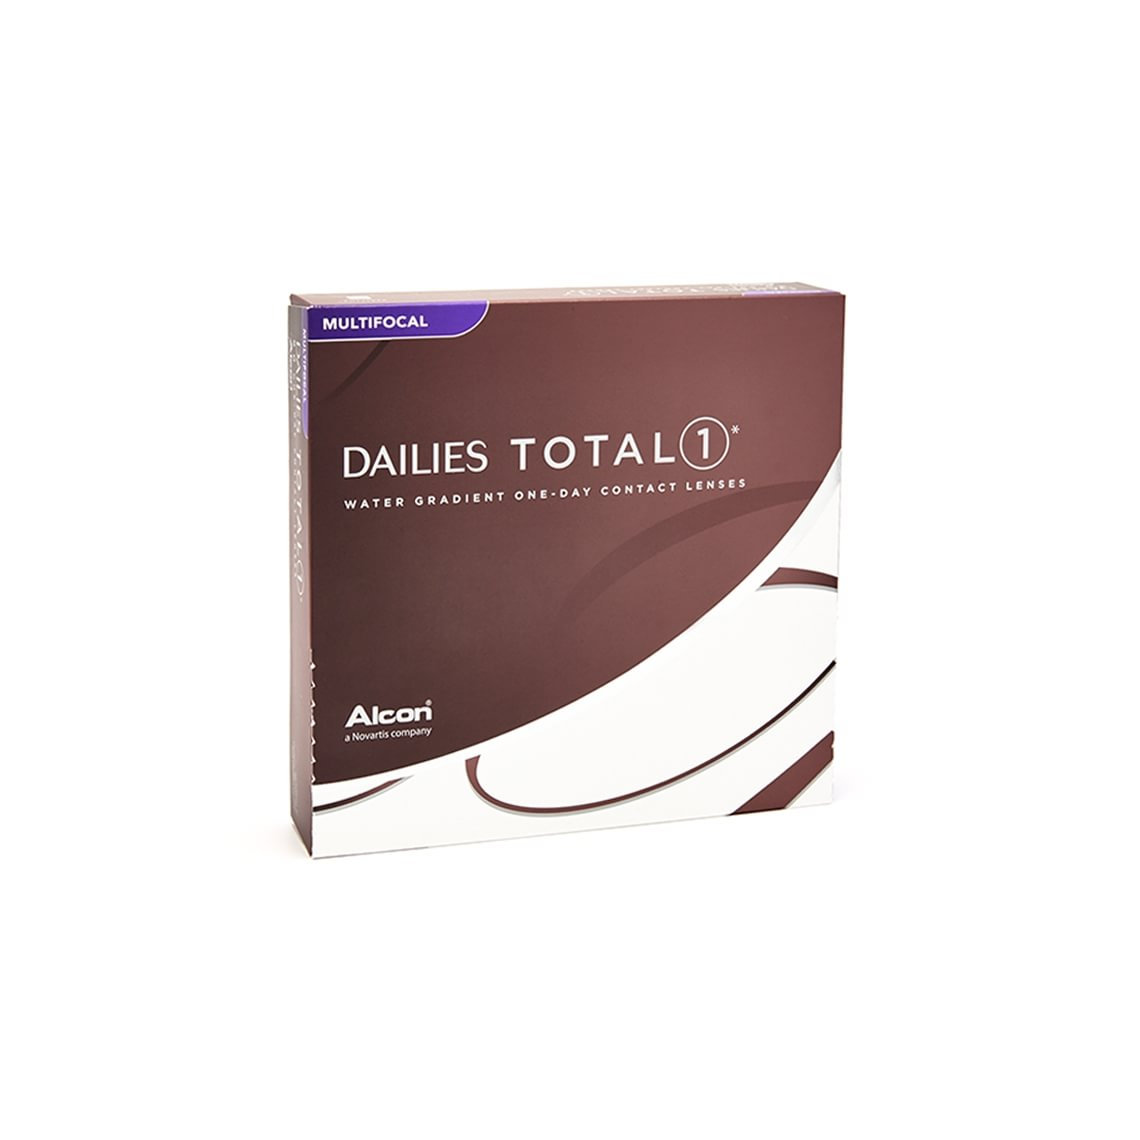 DAILIES Total 1 Multifocal 90 st/box